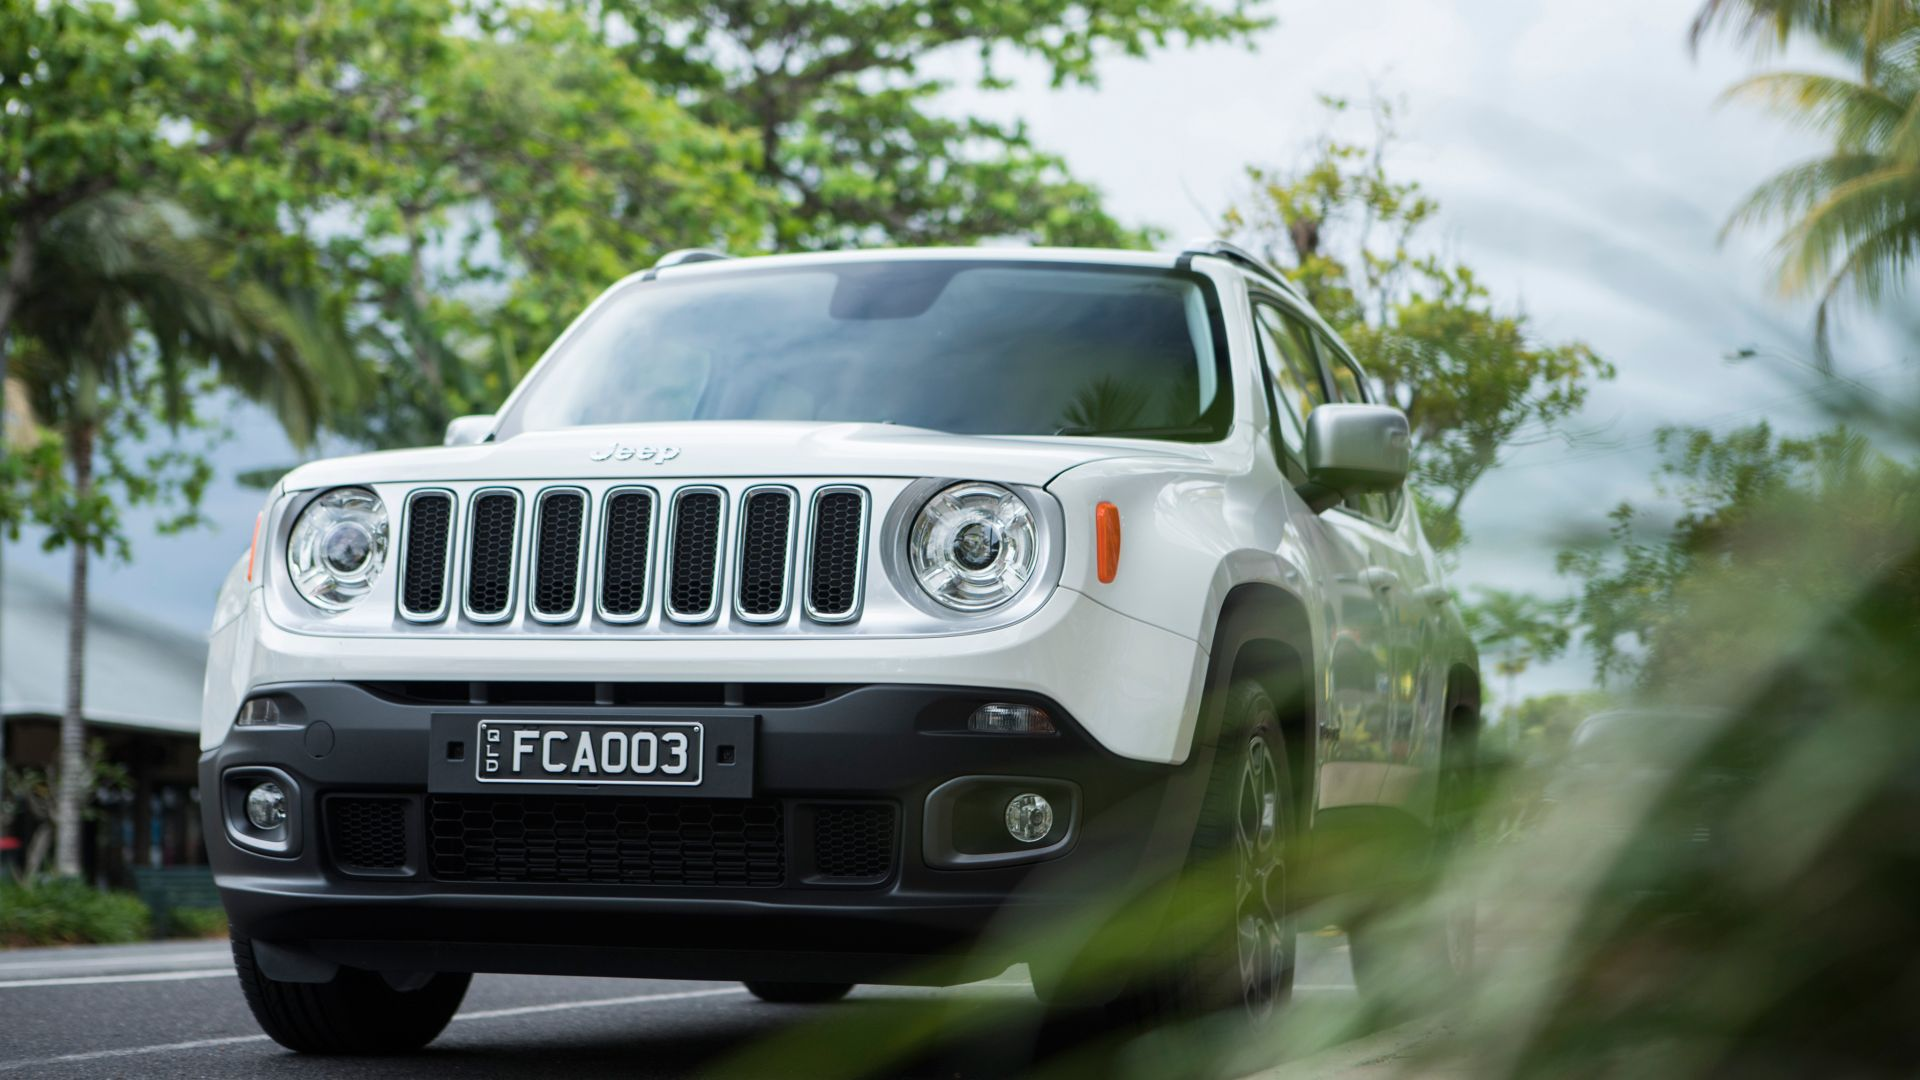 Wallpaper Jeep Renegade Limited White Suv Cars Bikes 7640